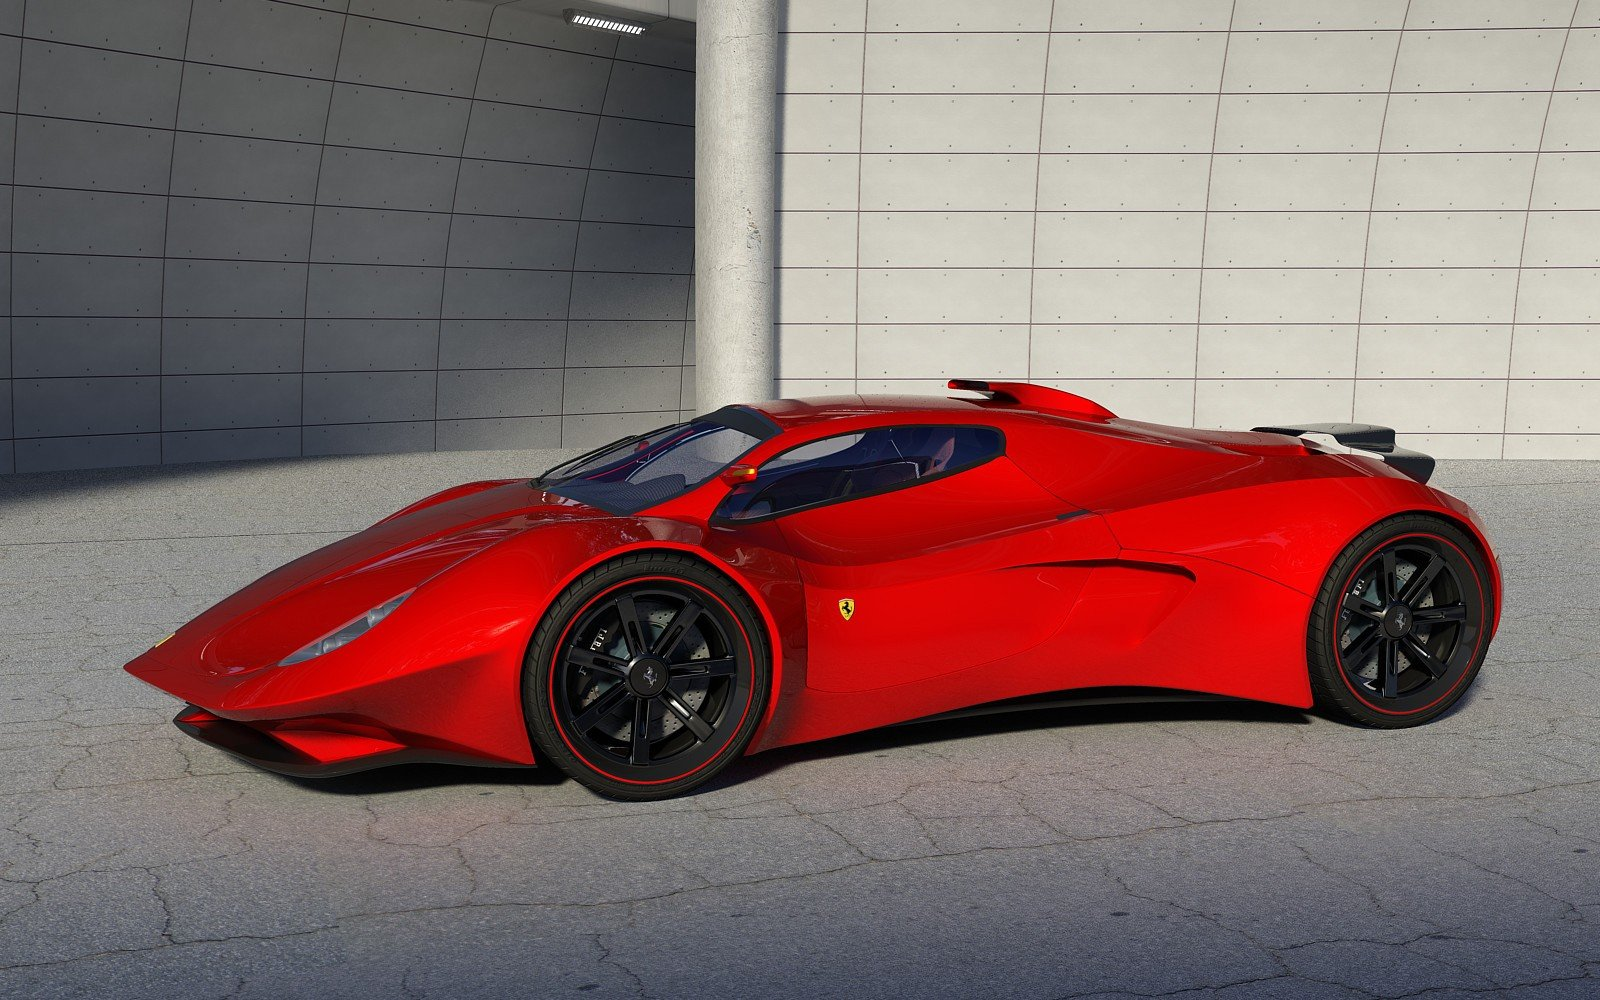 Latest Top 50 Most Dashing And Beautiful Ferrari Car Wallpapers In Hd Free Download